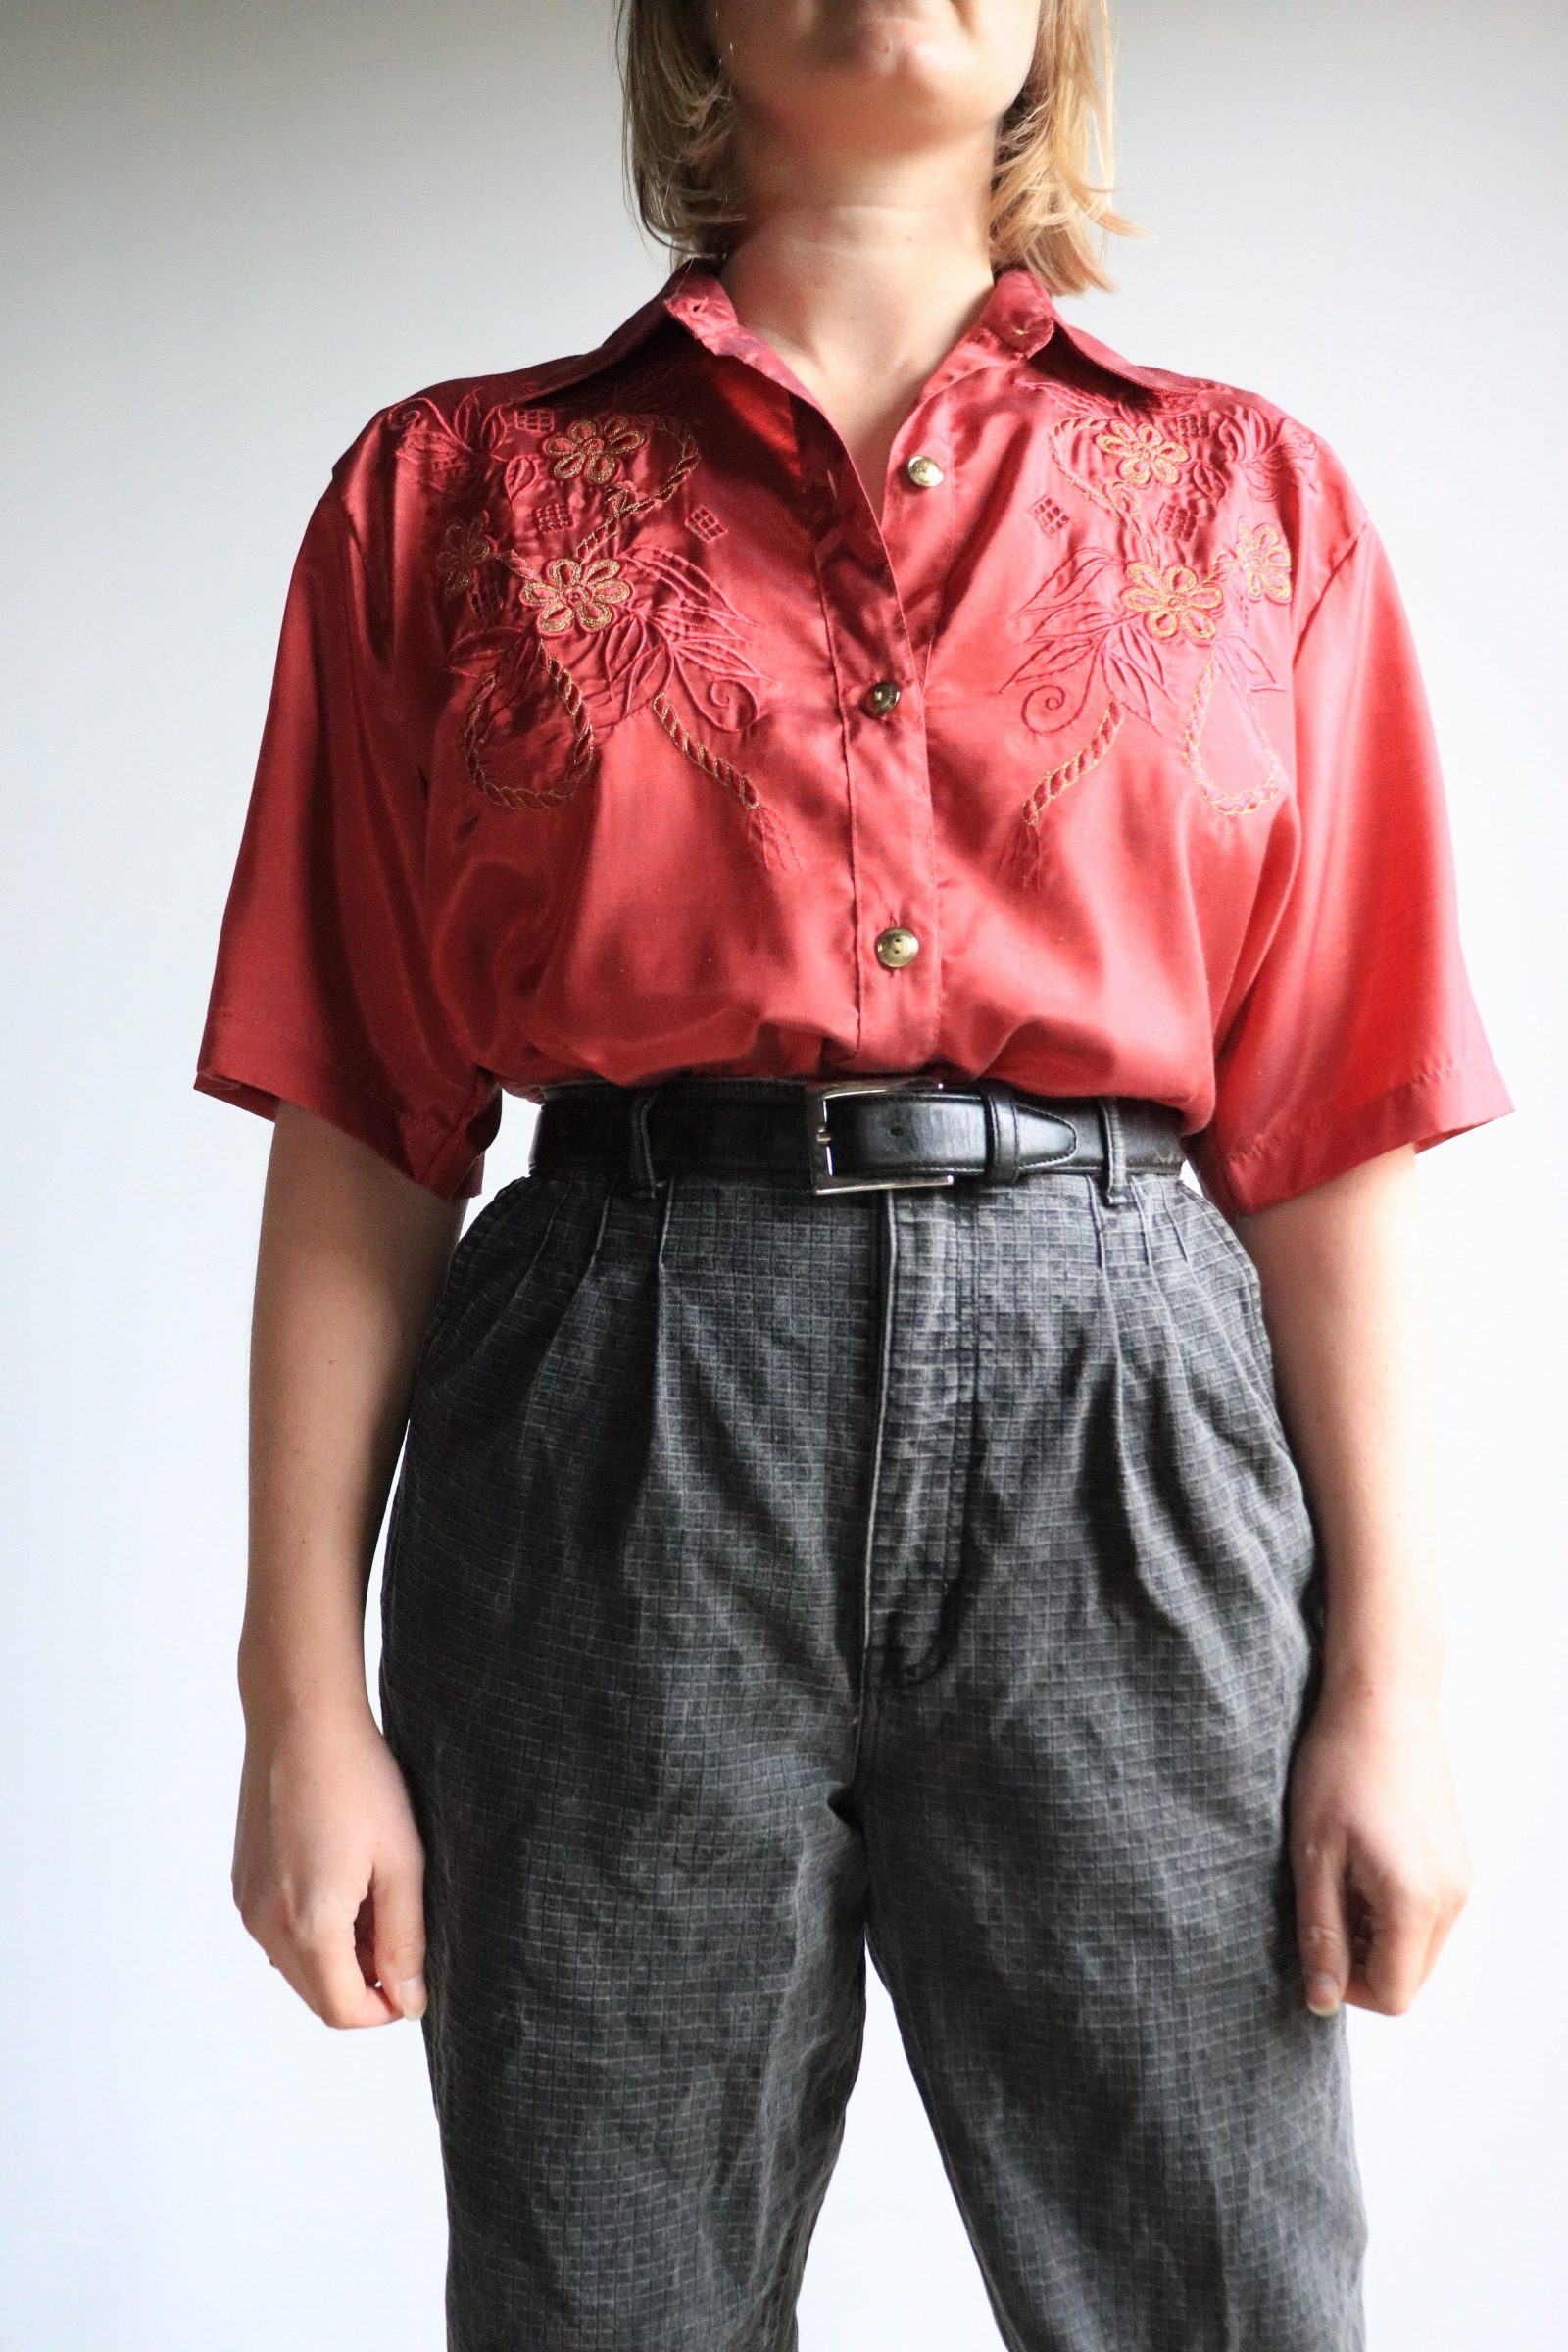 80s short sleeved embroidered shirt